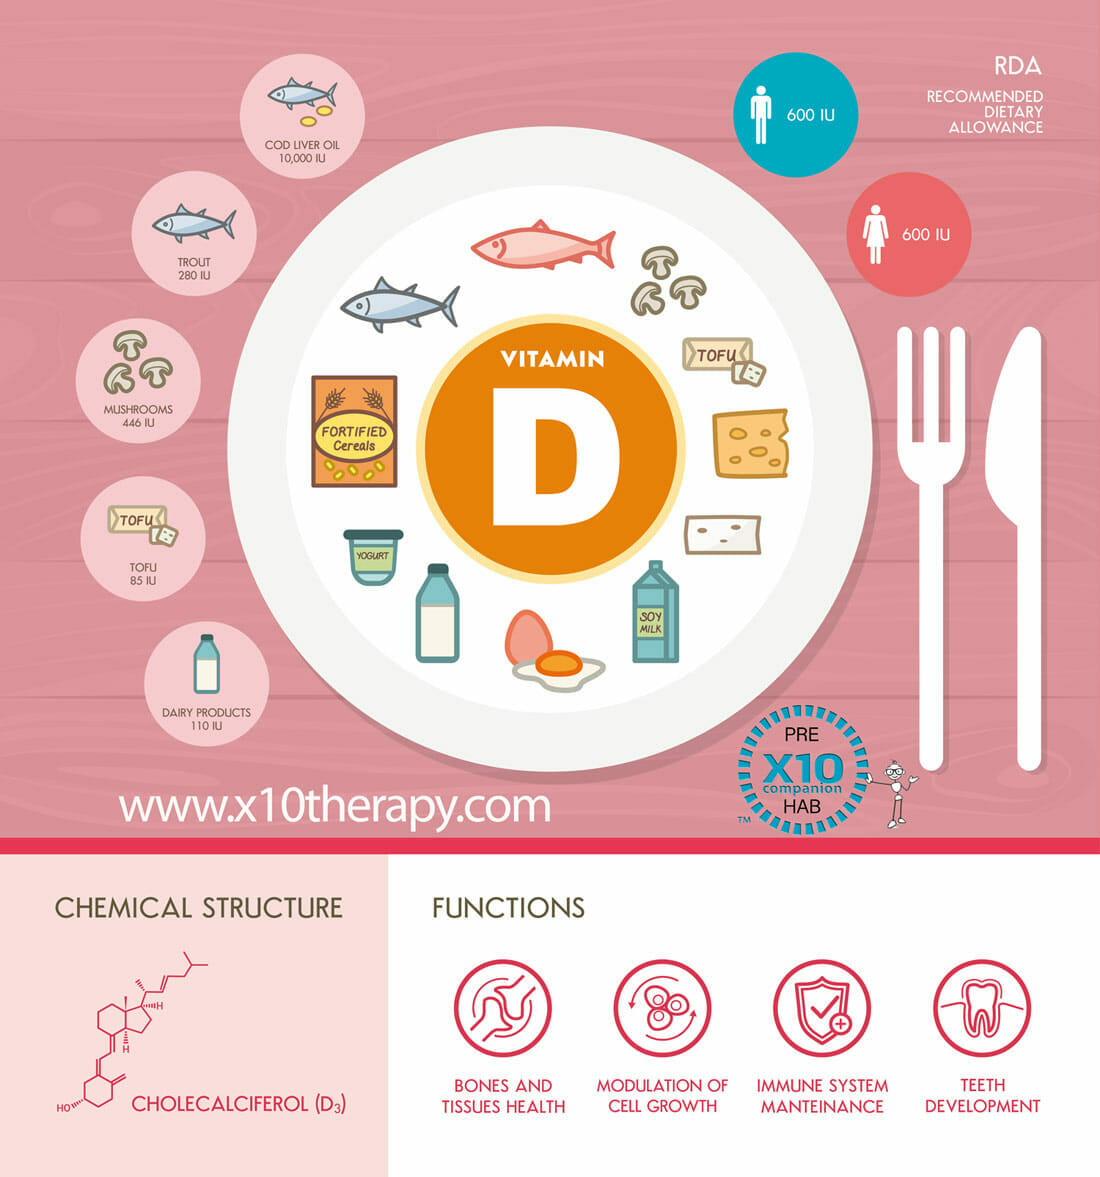 InfoGraphic-Vitamin D and Knee Replacement